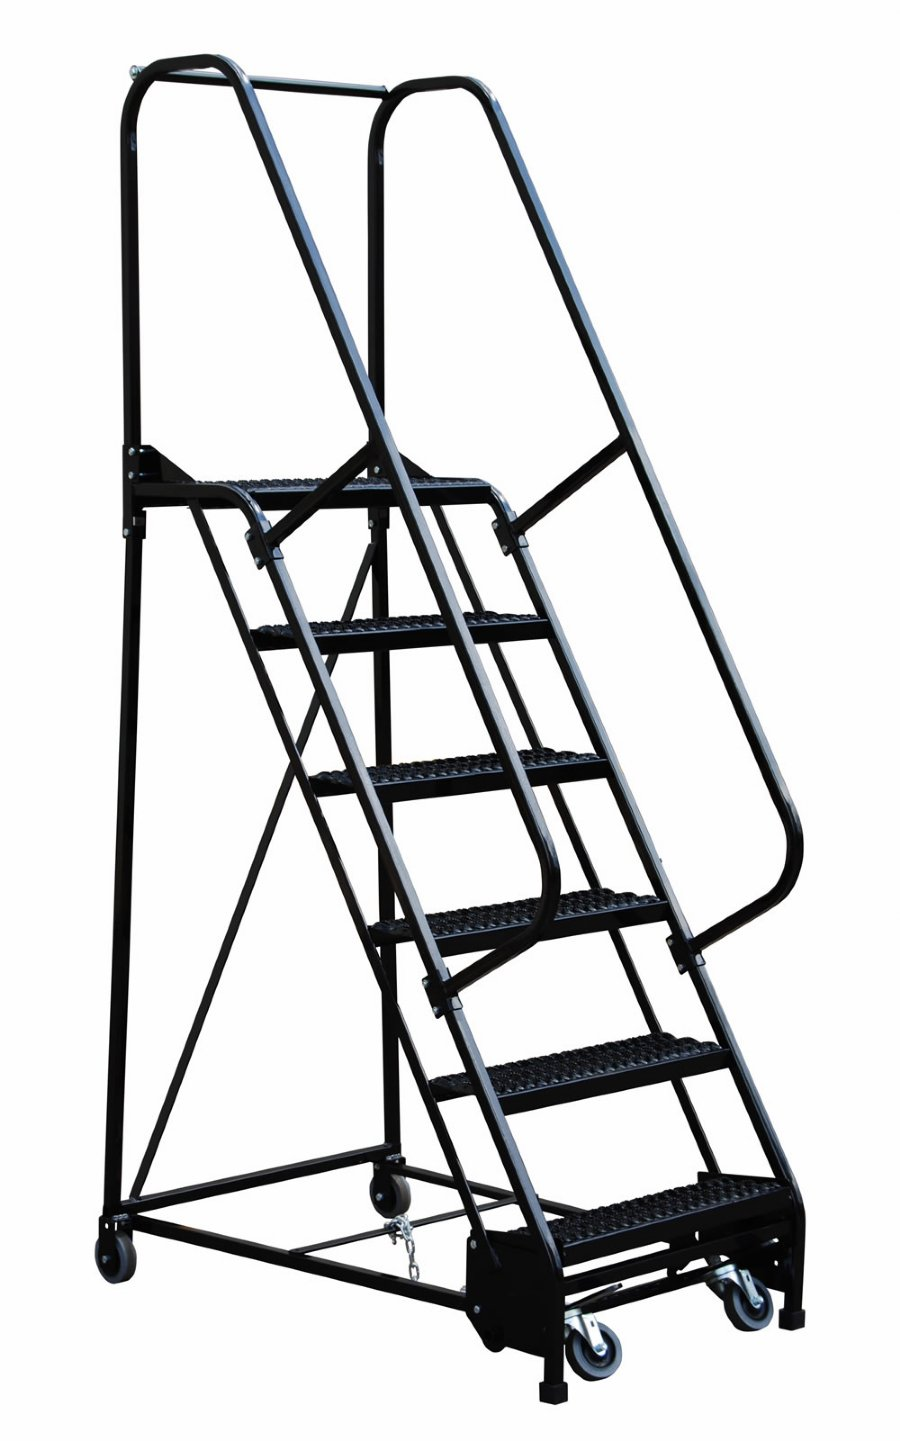 2 Step Esd Safe Portable Warehouse Ladder 2 Step Esd Safe